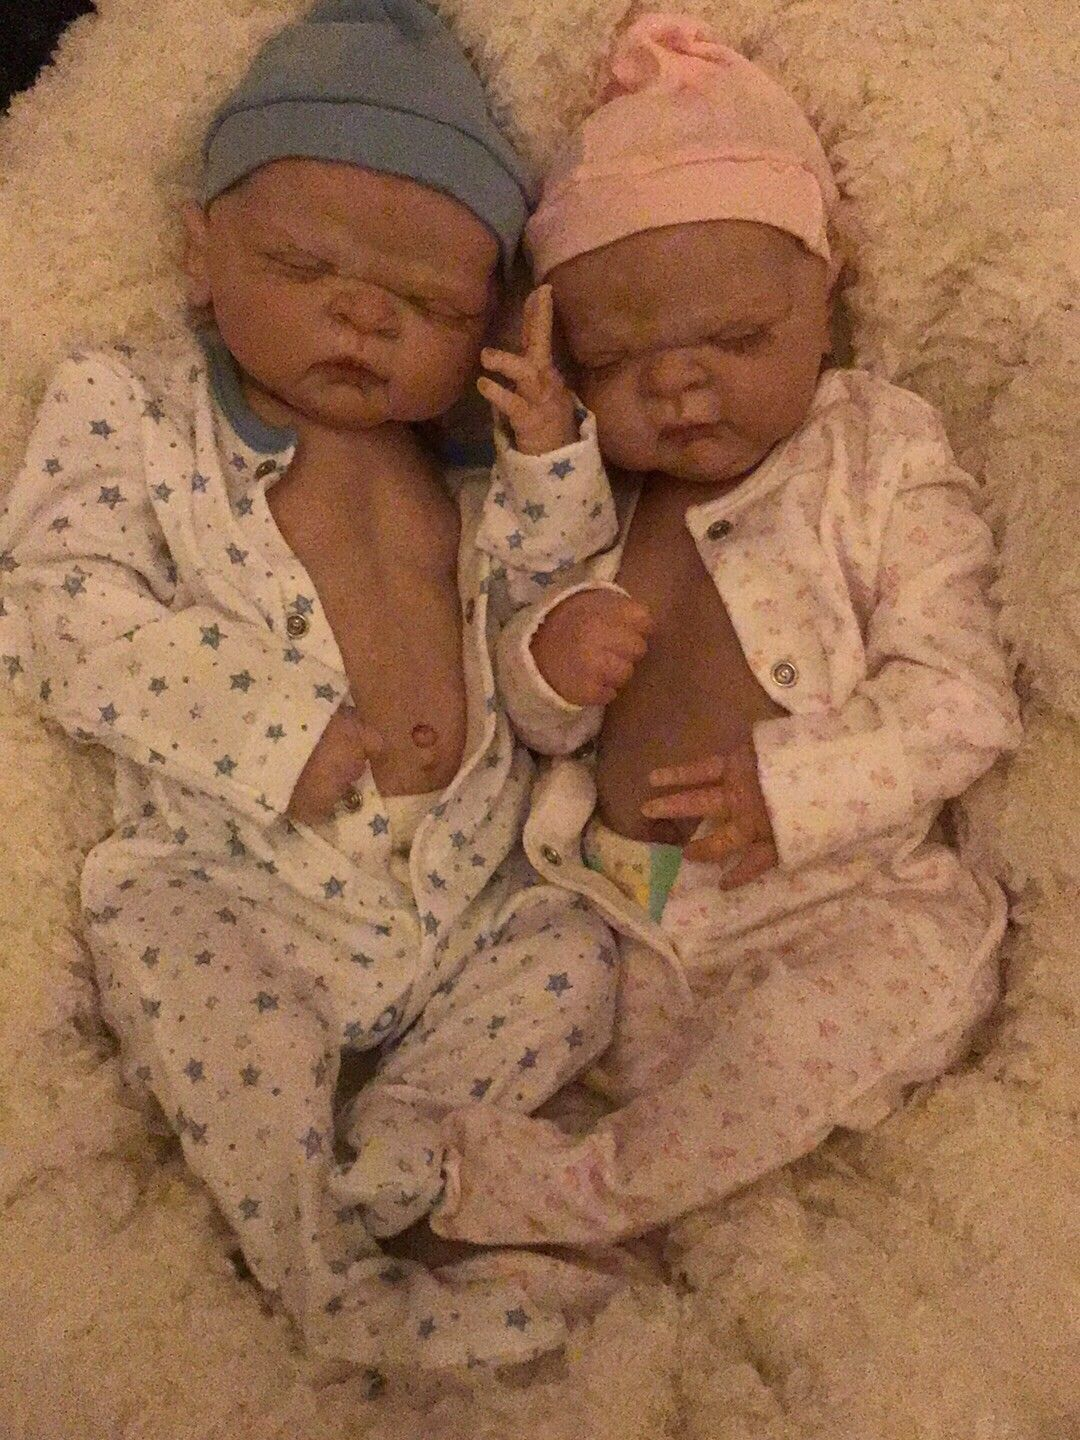 Super Cheap Reborn Baby Twins On Sale Our Life With Reborns